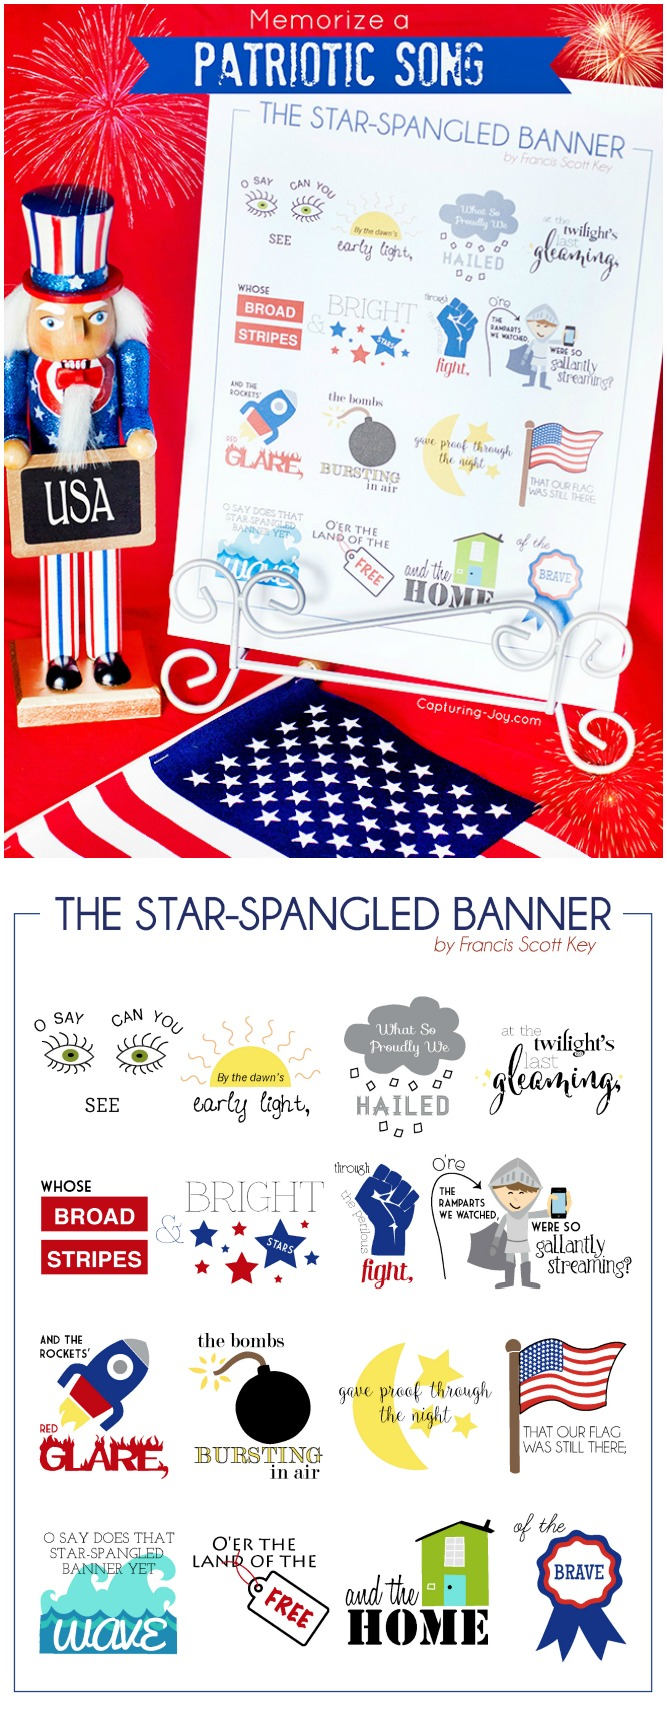 Help your kids memorize the a patriotic song The star spangled banner for July 4th